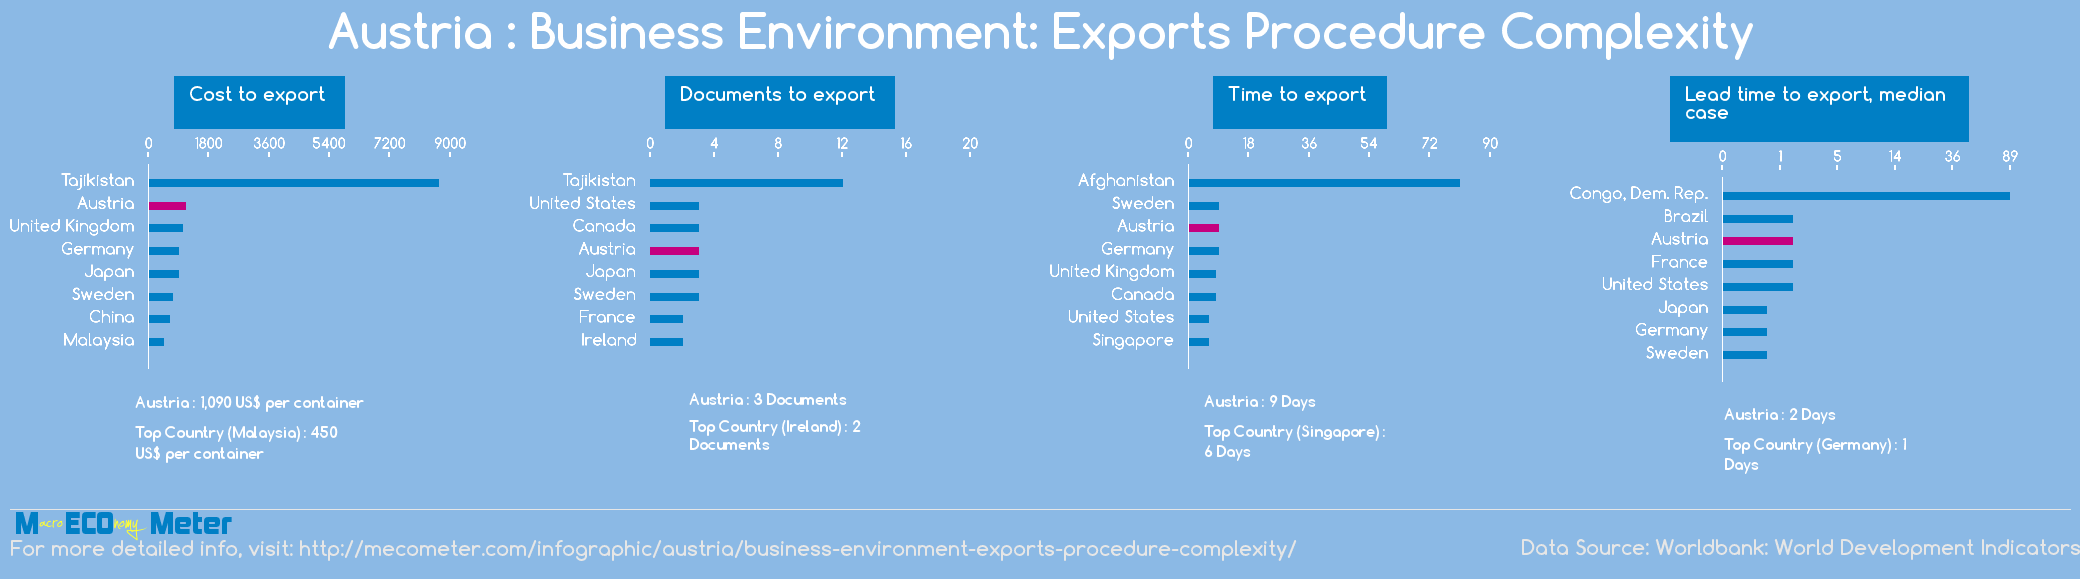 Austria : Business Environment: Exports Procedure Complexity